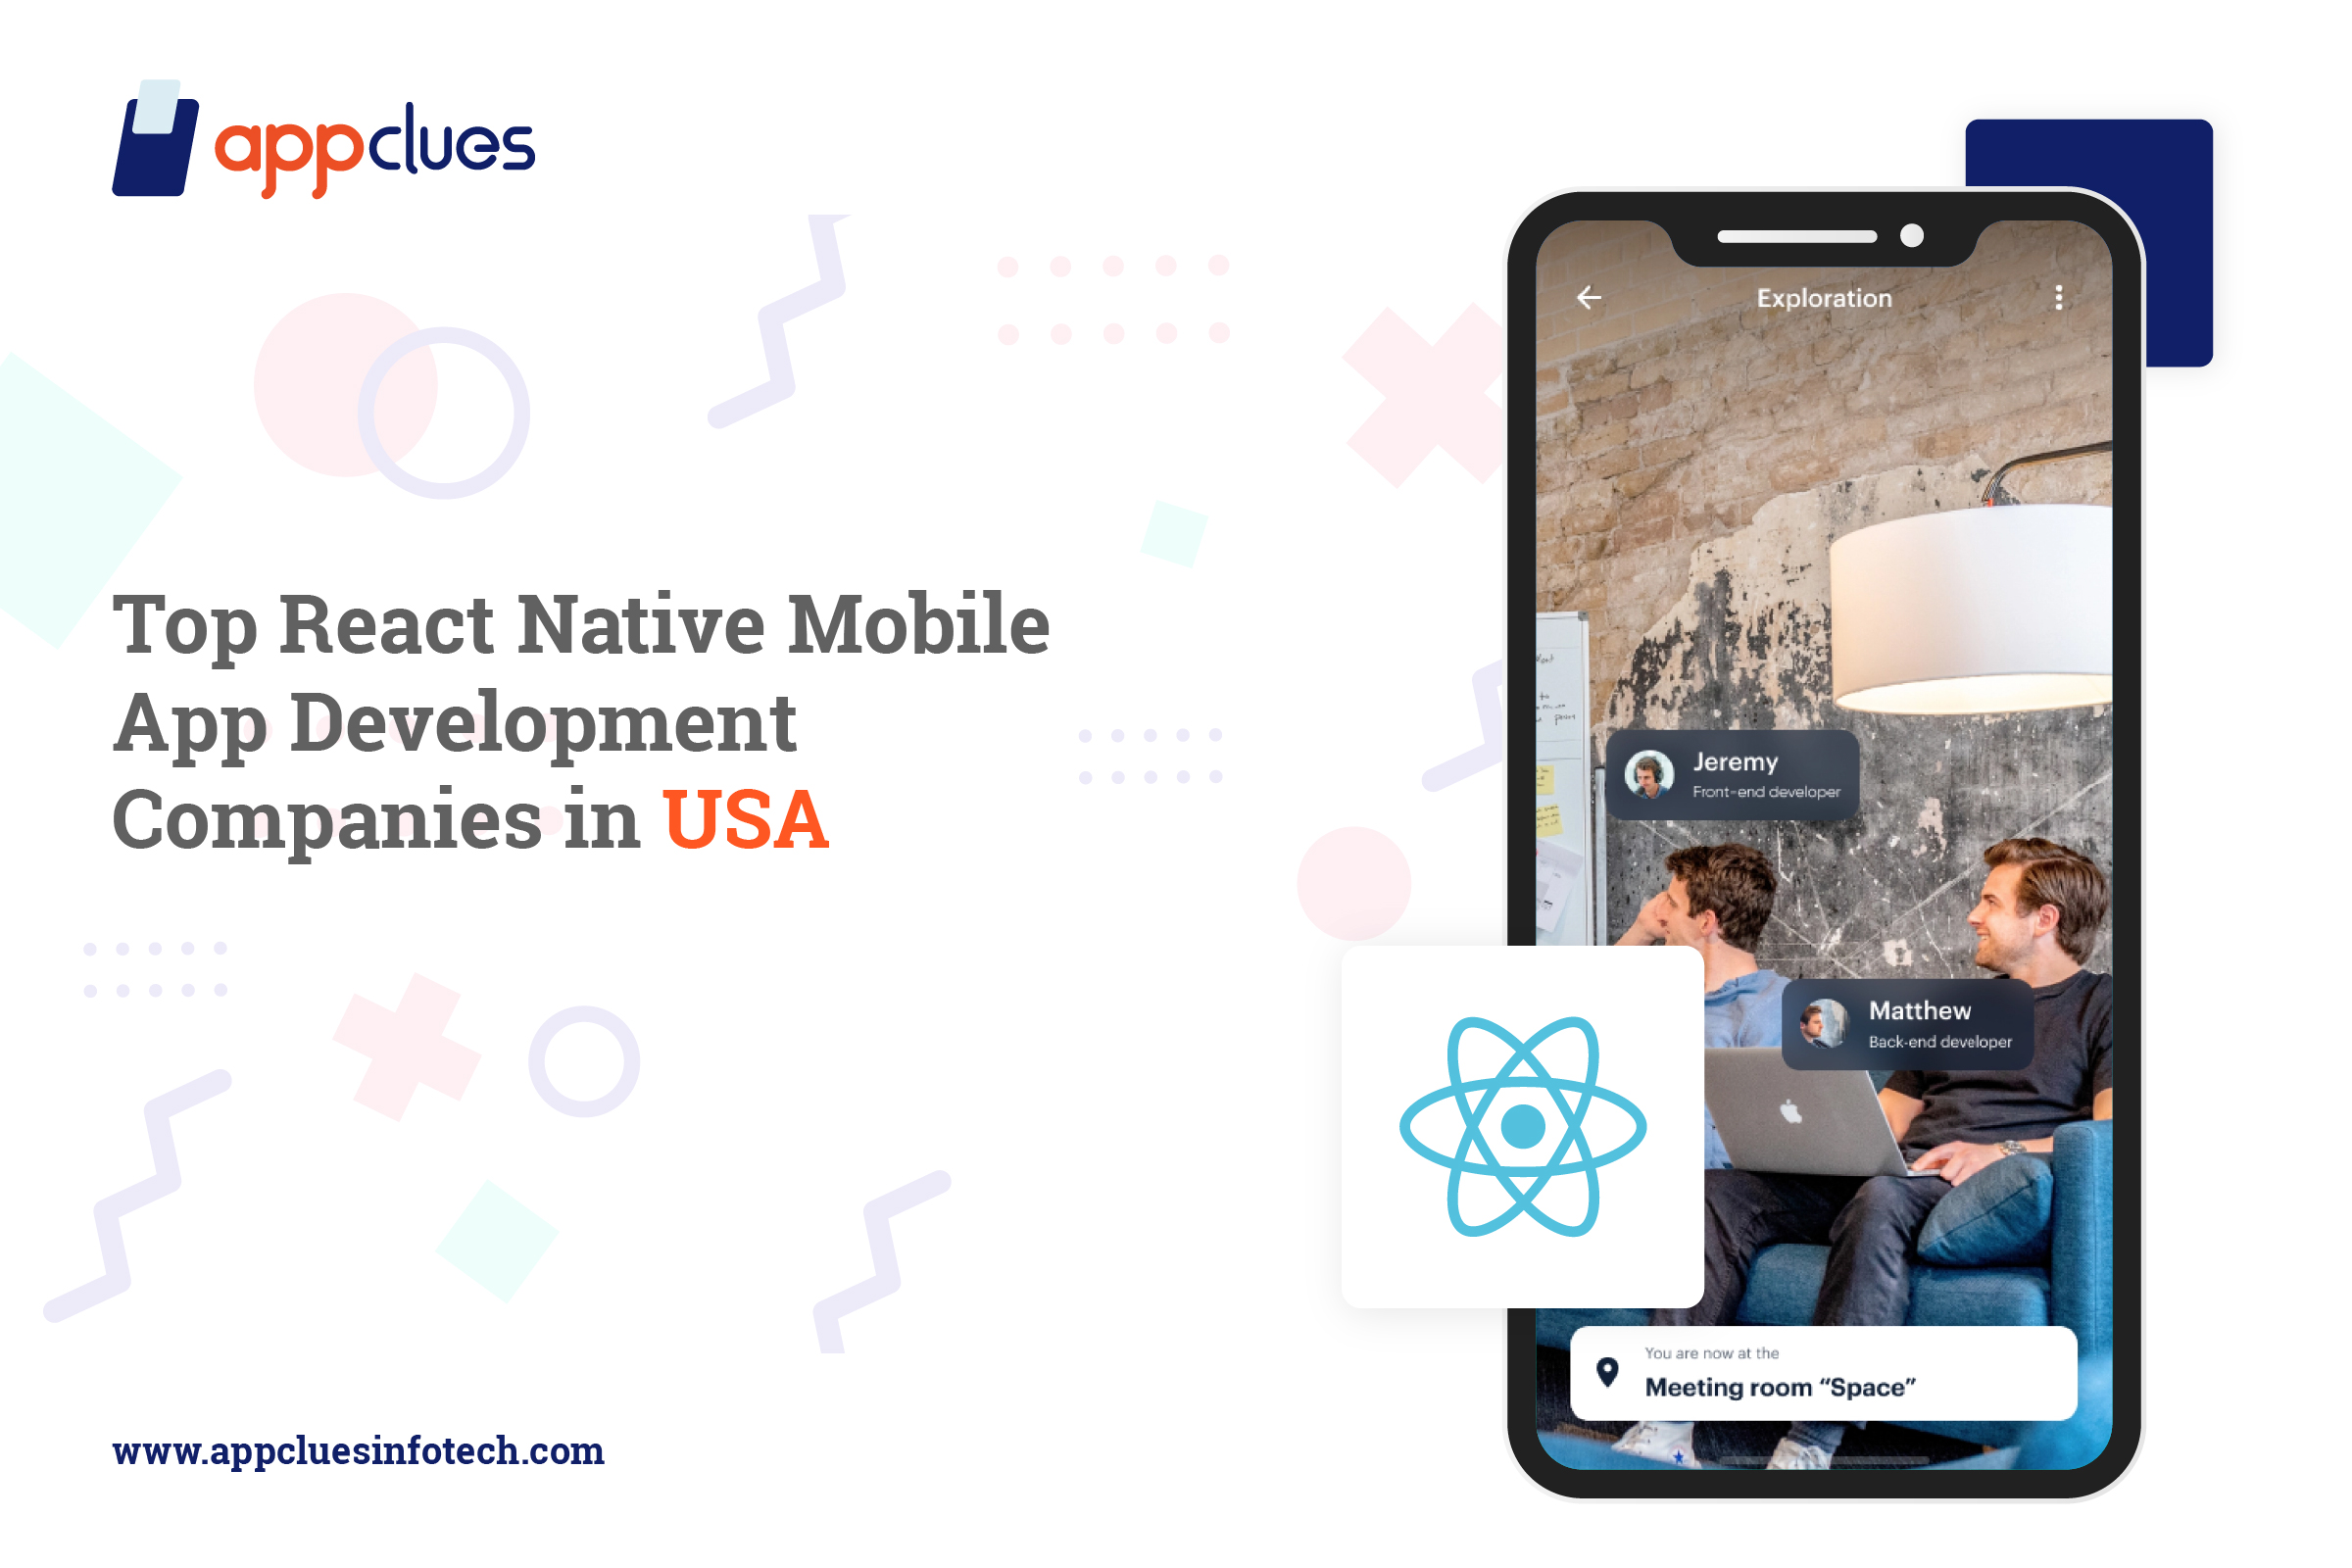 Top react native mobile app development companies in USA